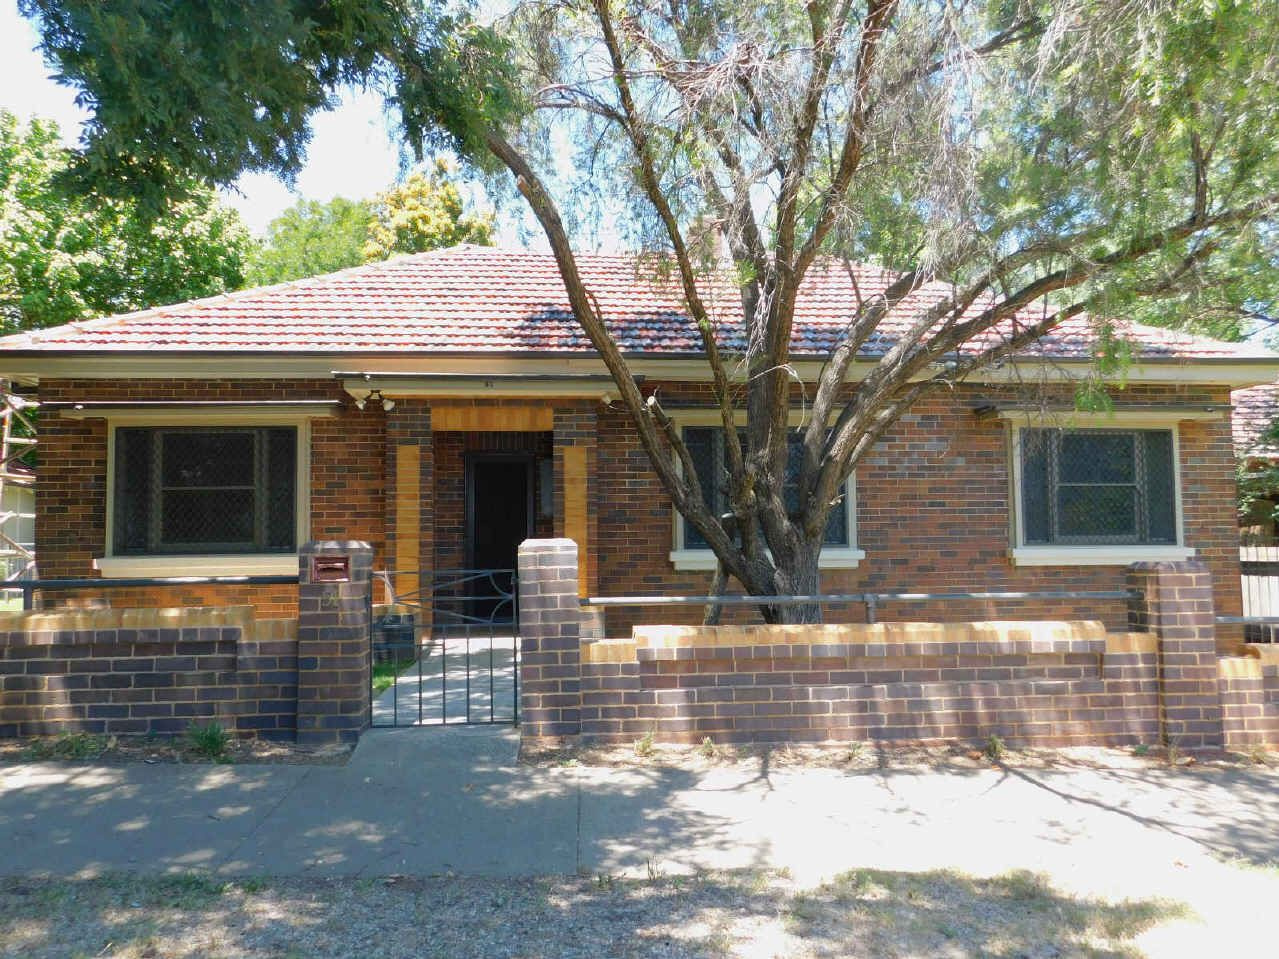 51 FITZROY STREET, East Tamworth NSW 2340, Image 0